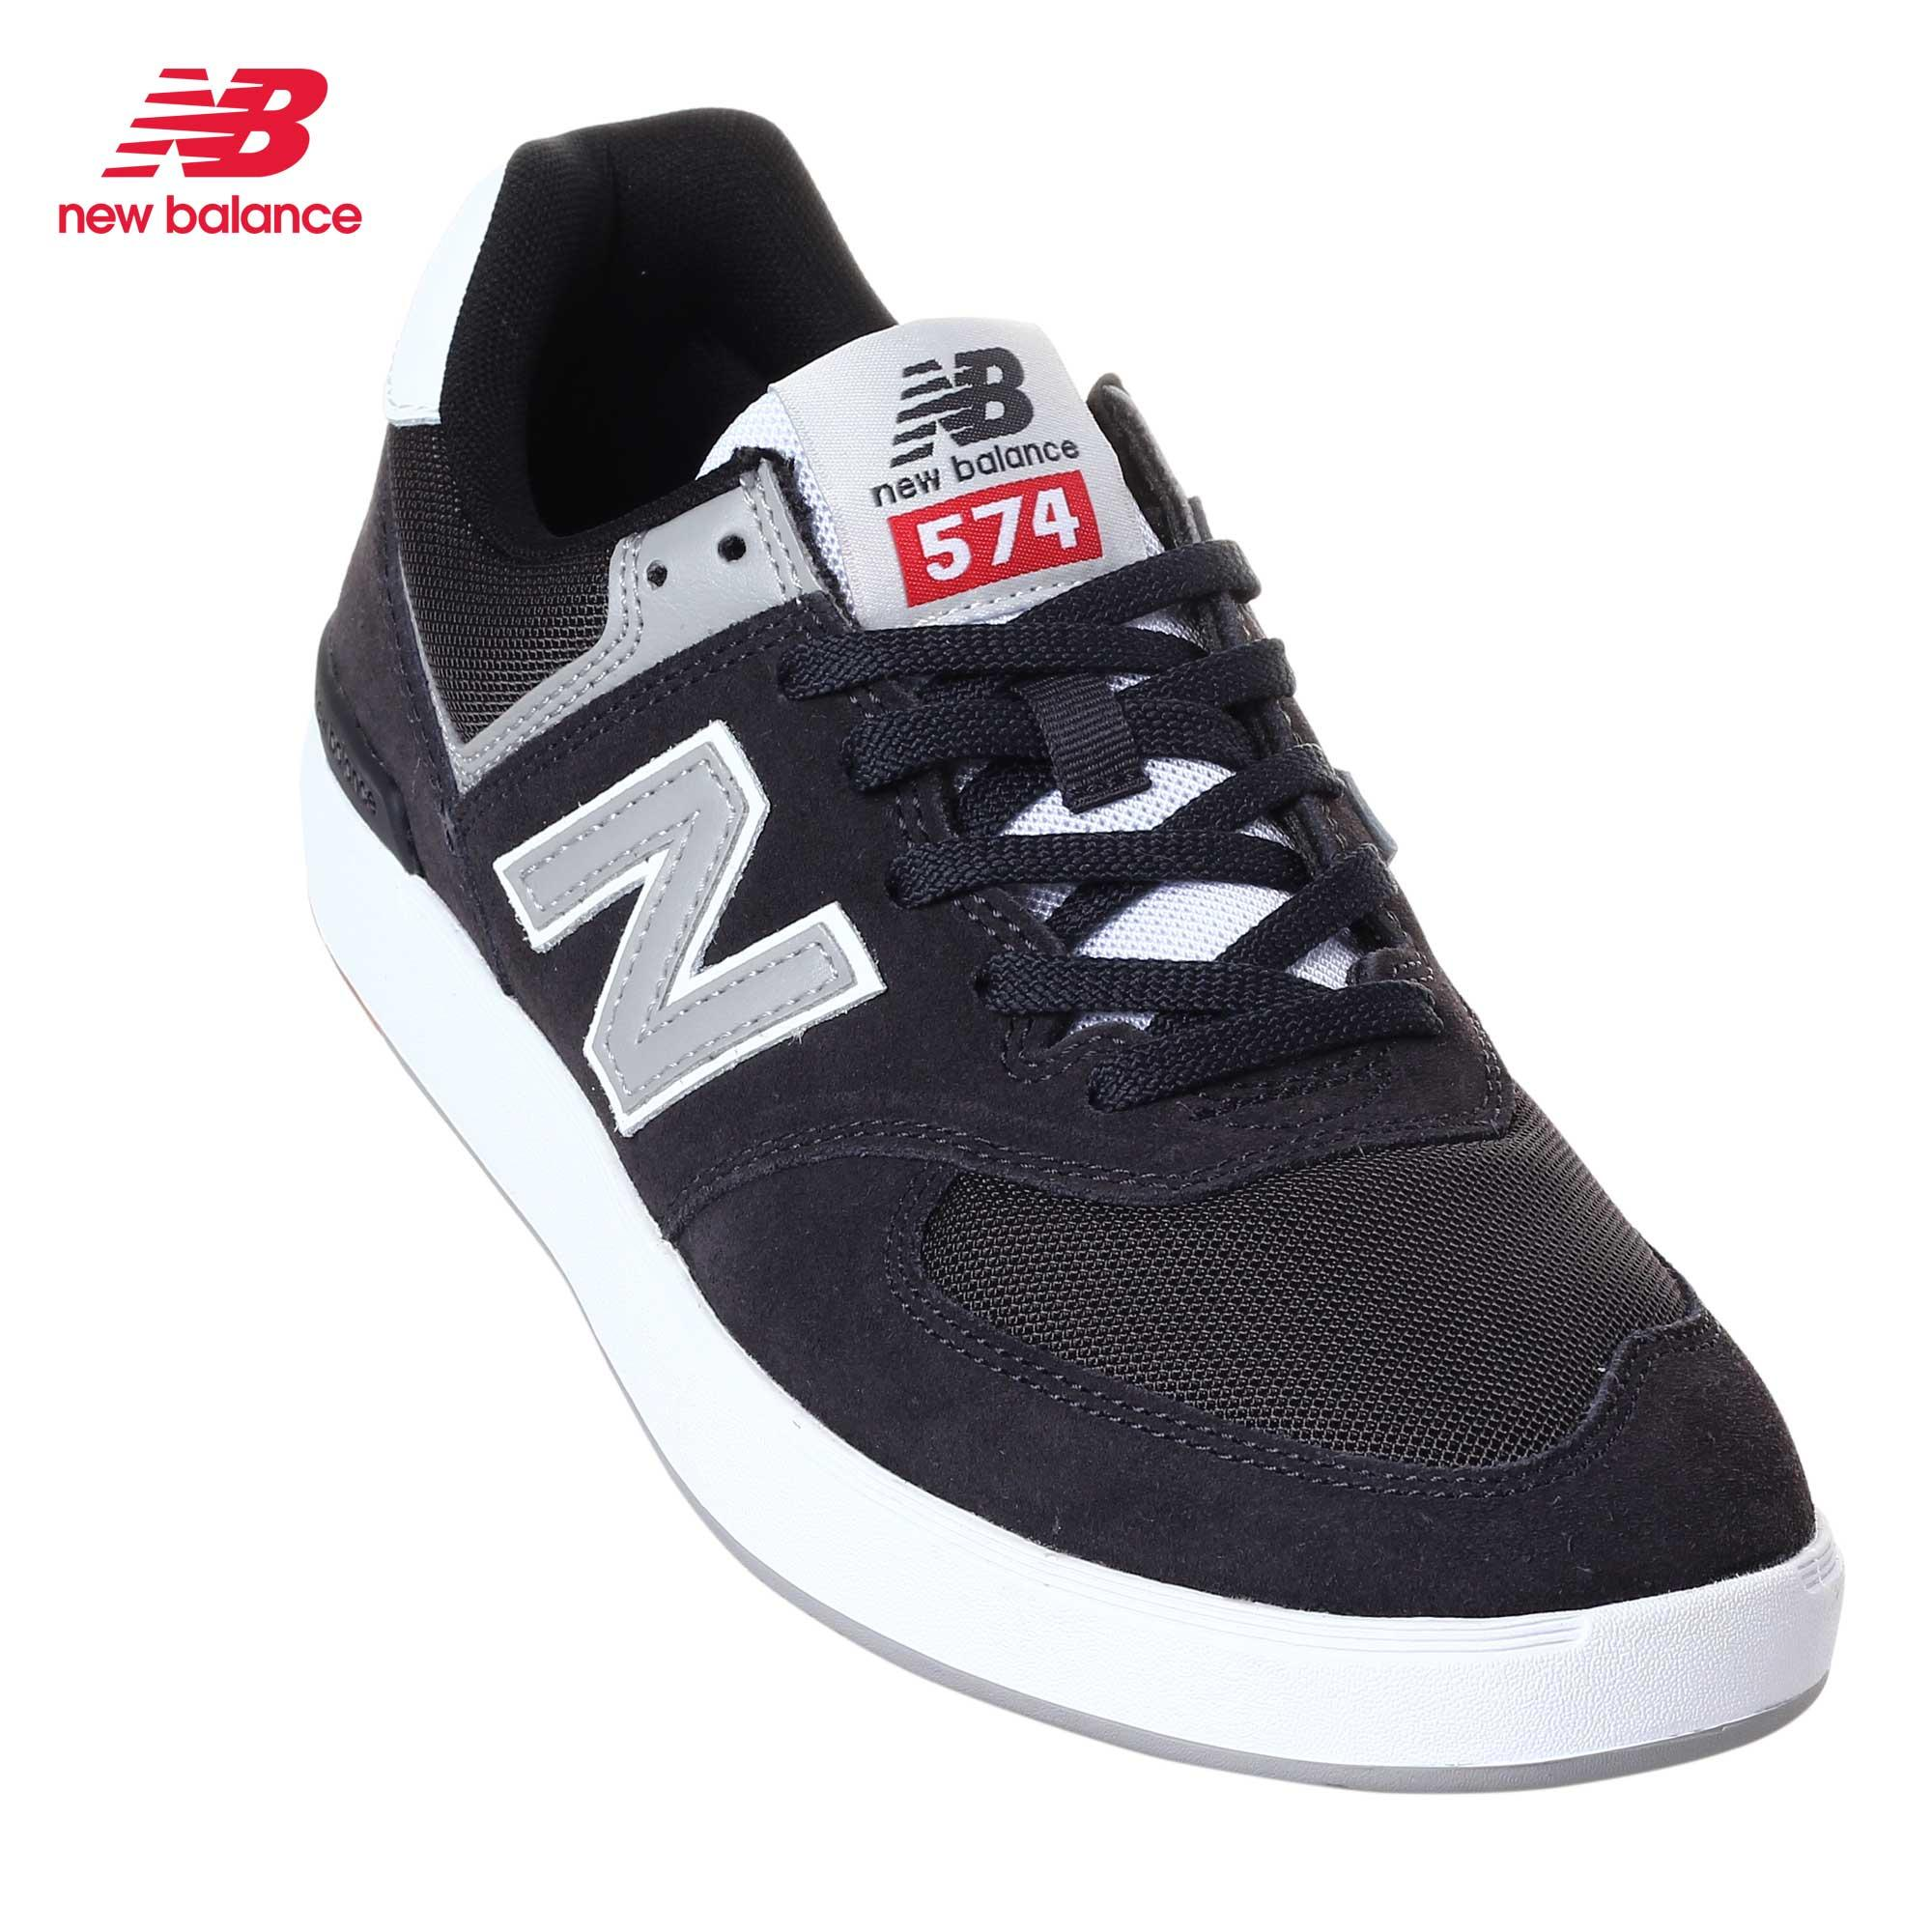 finest selection 664a9 43bf6 New Balance 574 All Coast Lifestyle Casual Rubber Shoes for Men